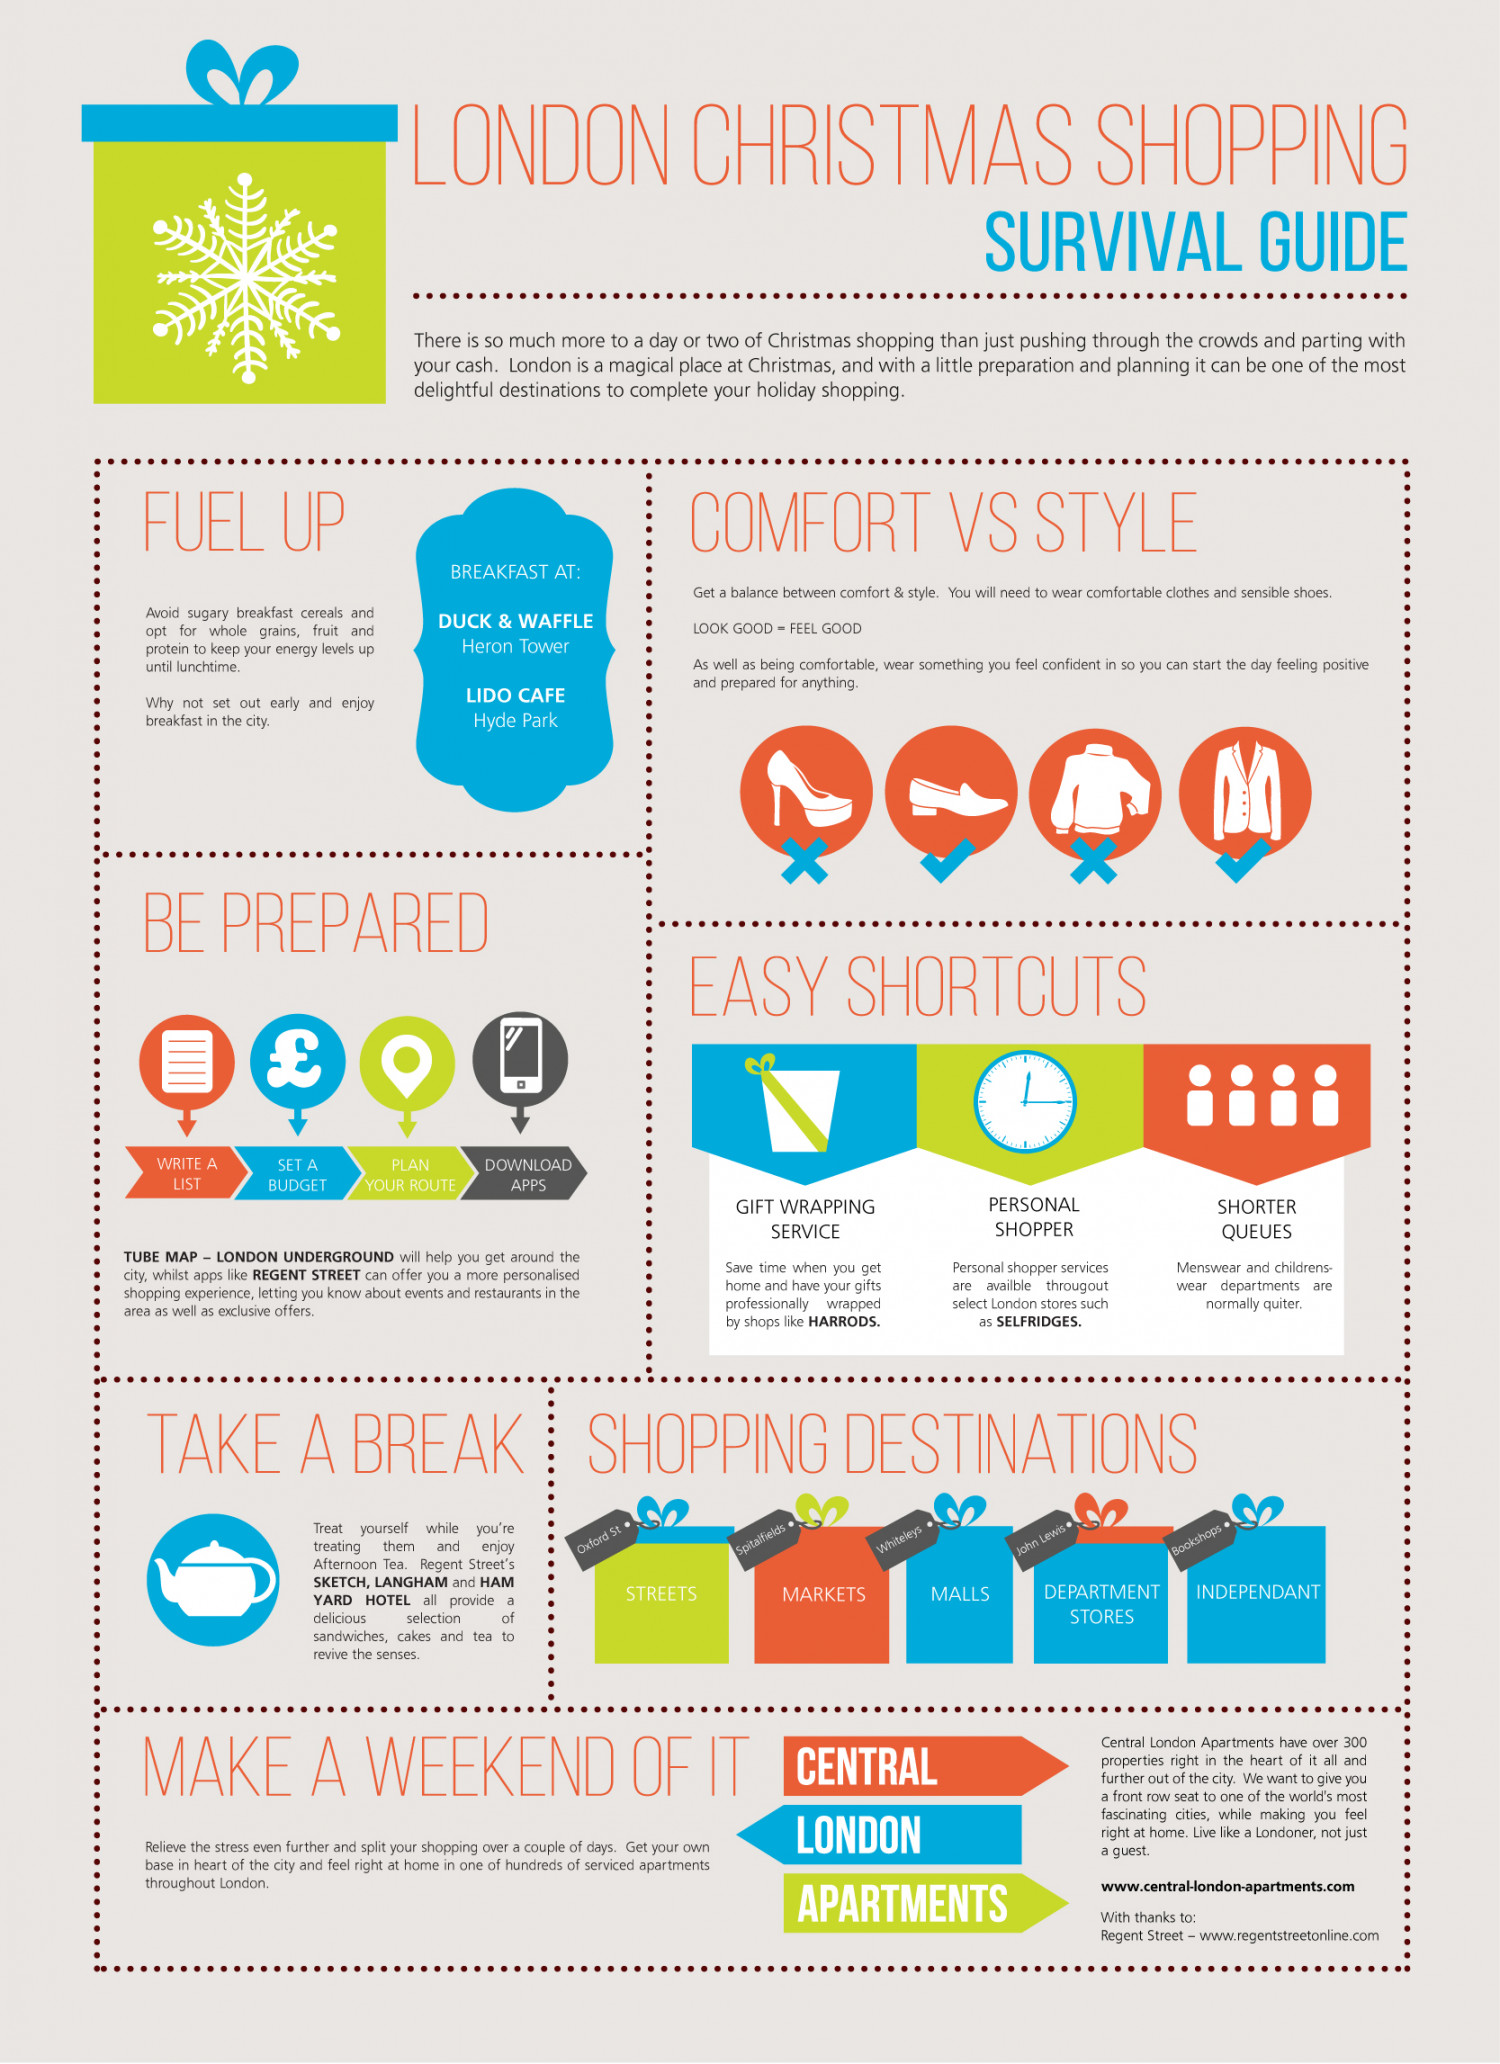 Surviving Christmas Shopping in London Infographic